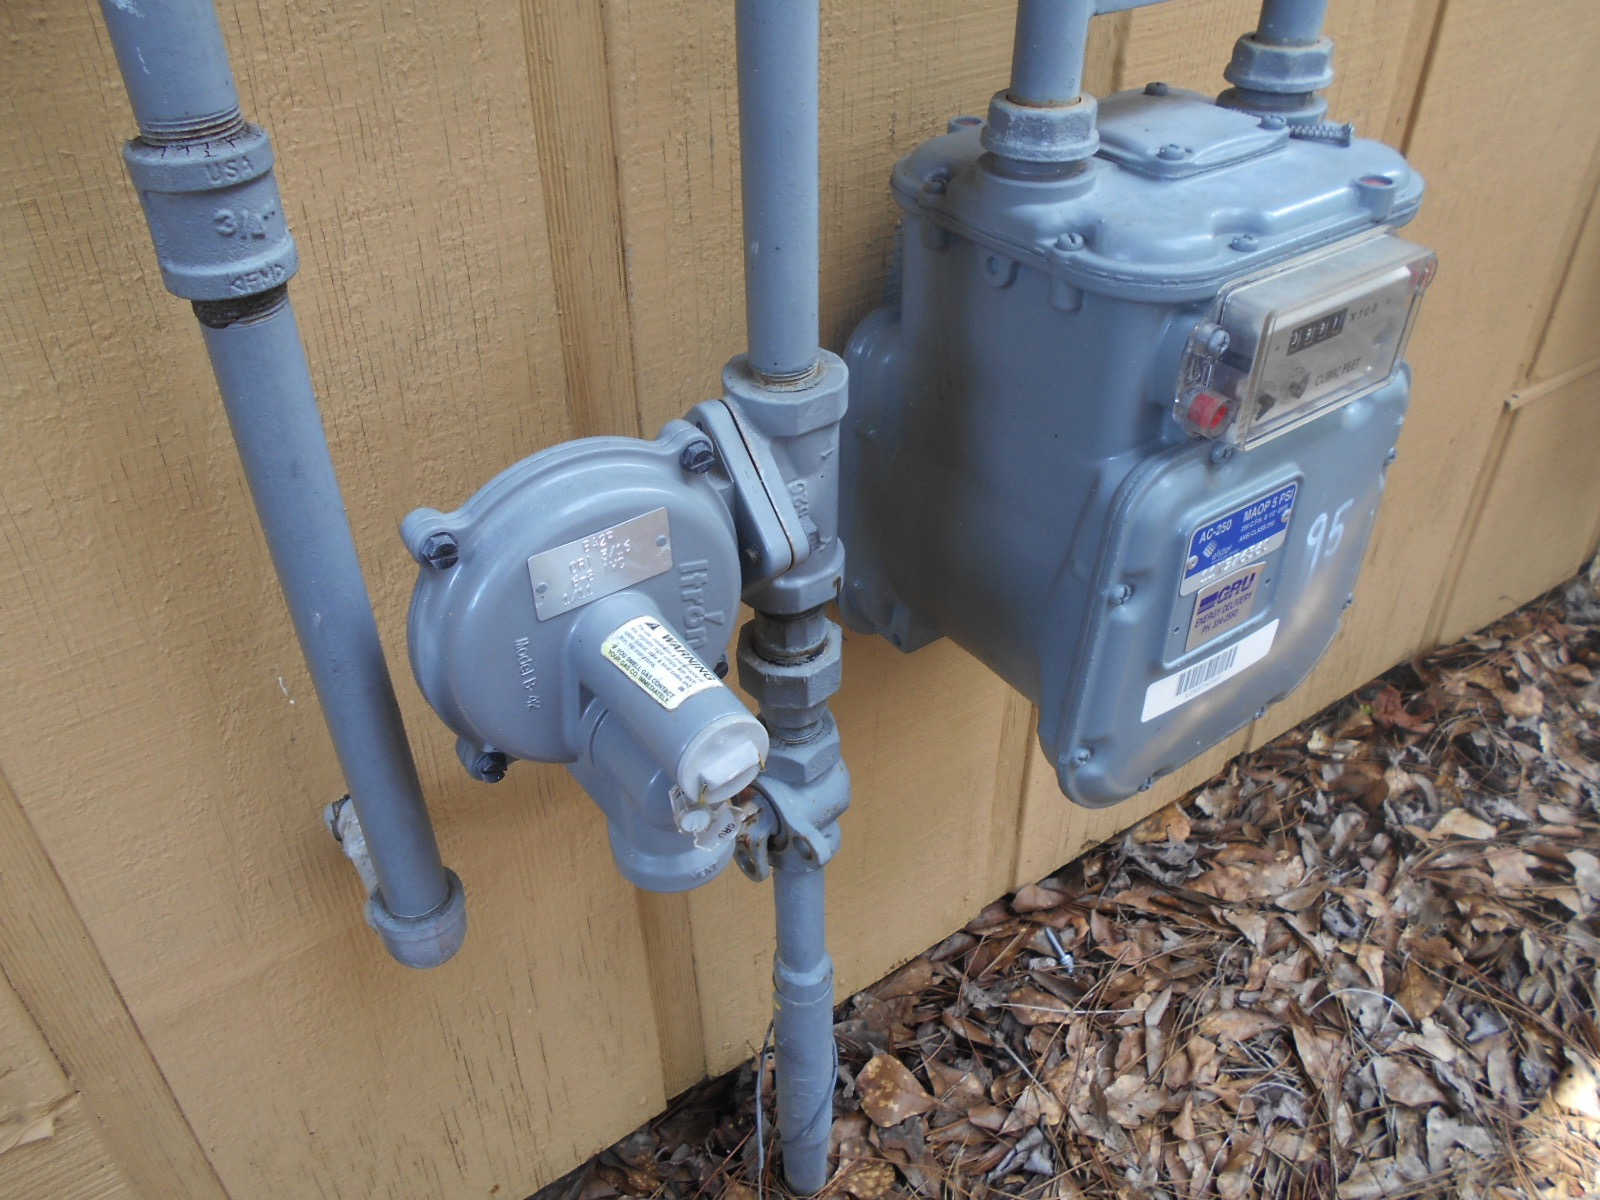 Is it normal to smell gas near a natural gas meter?